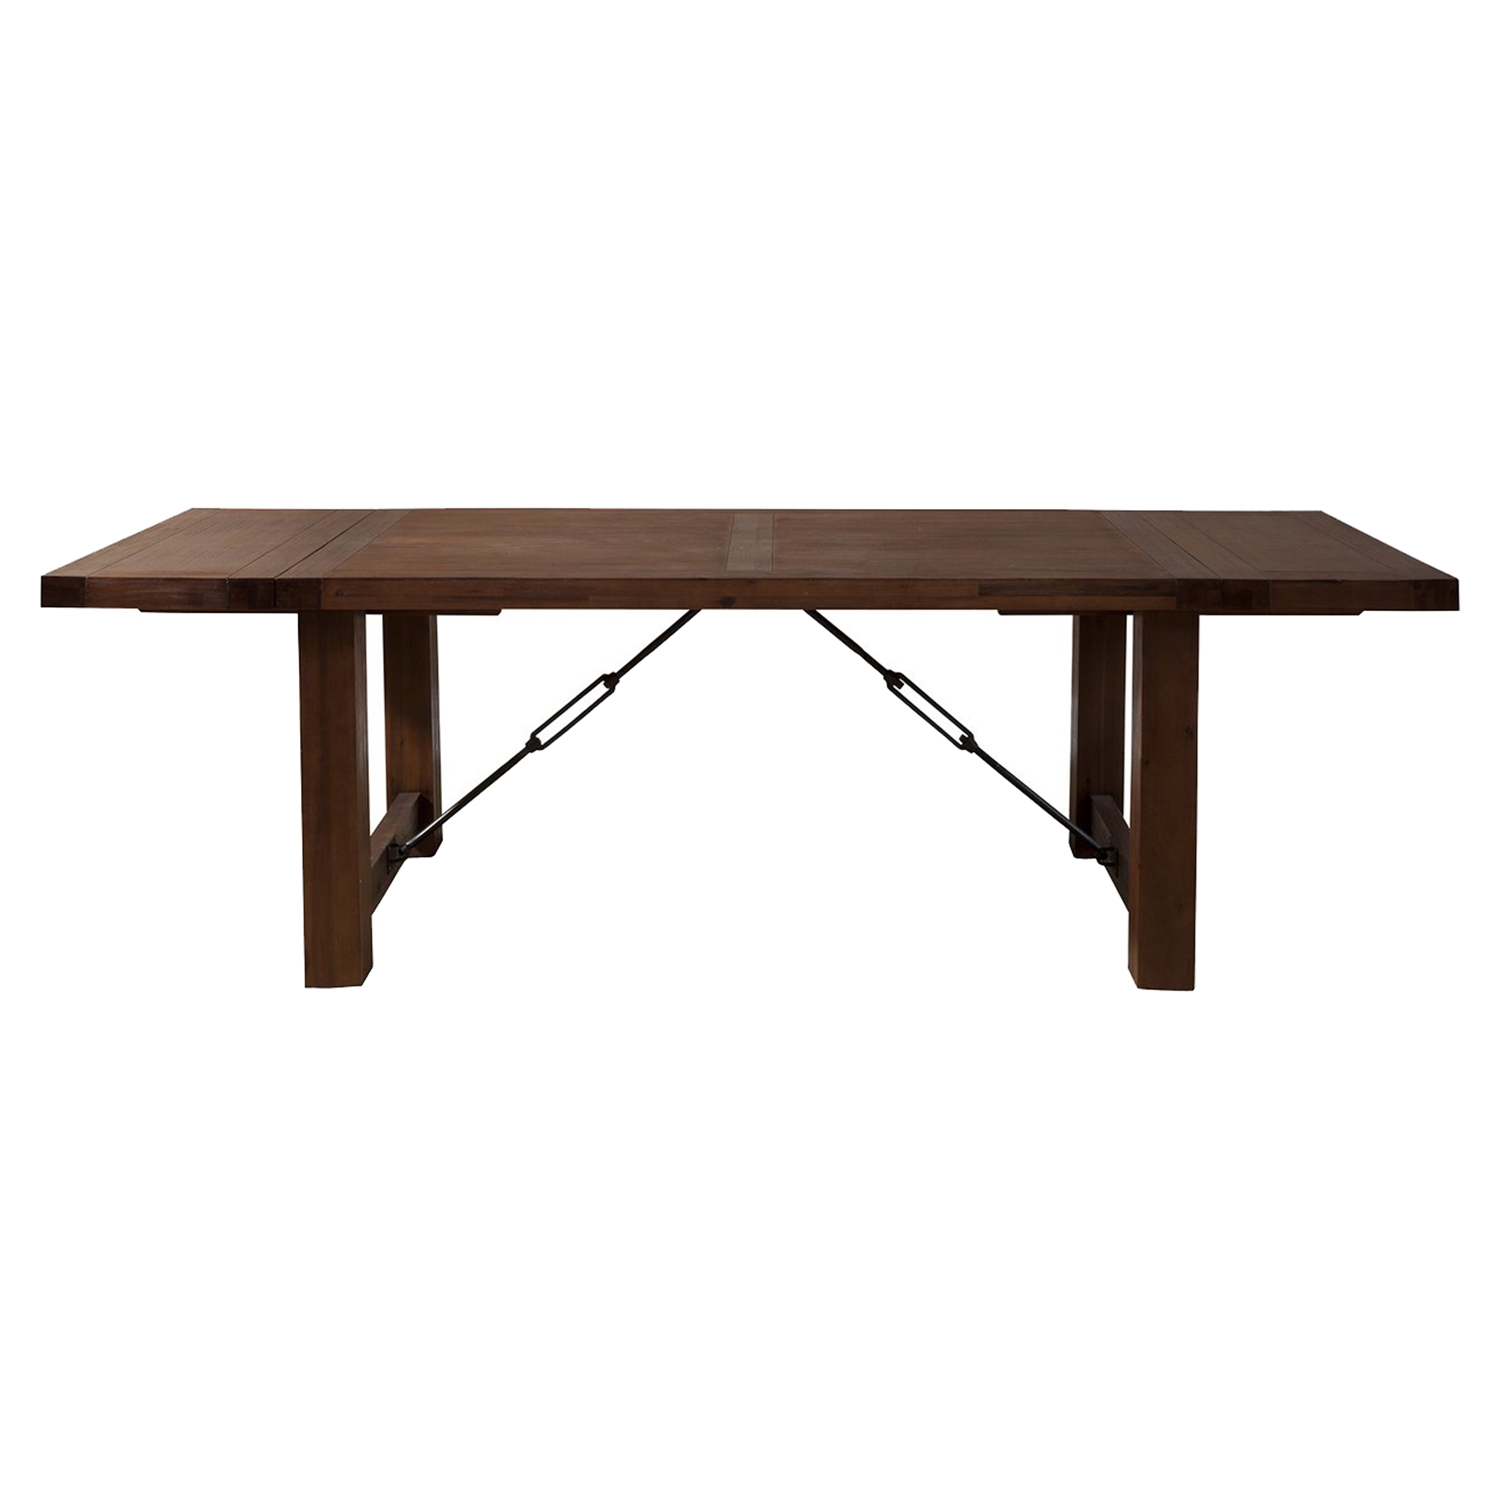 Pierre Dining Table - Antique Cappuccino, Dual Removable Leaves